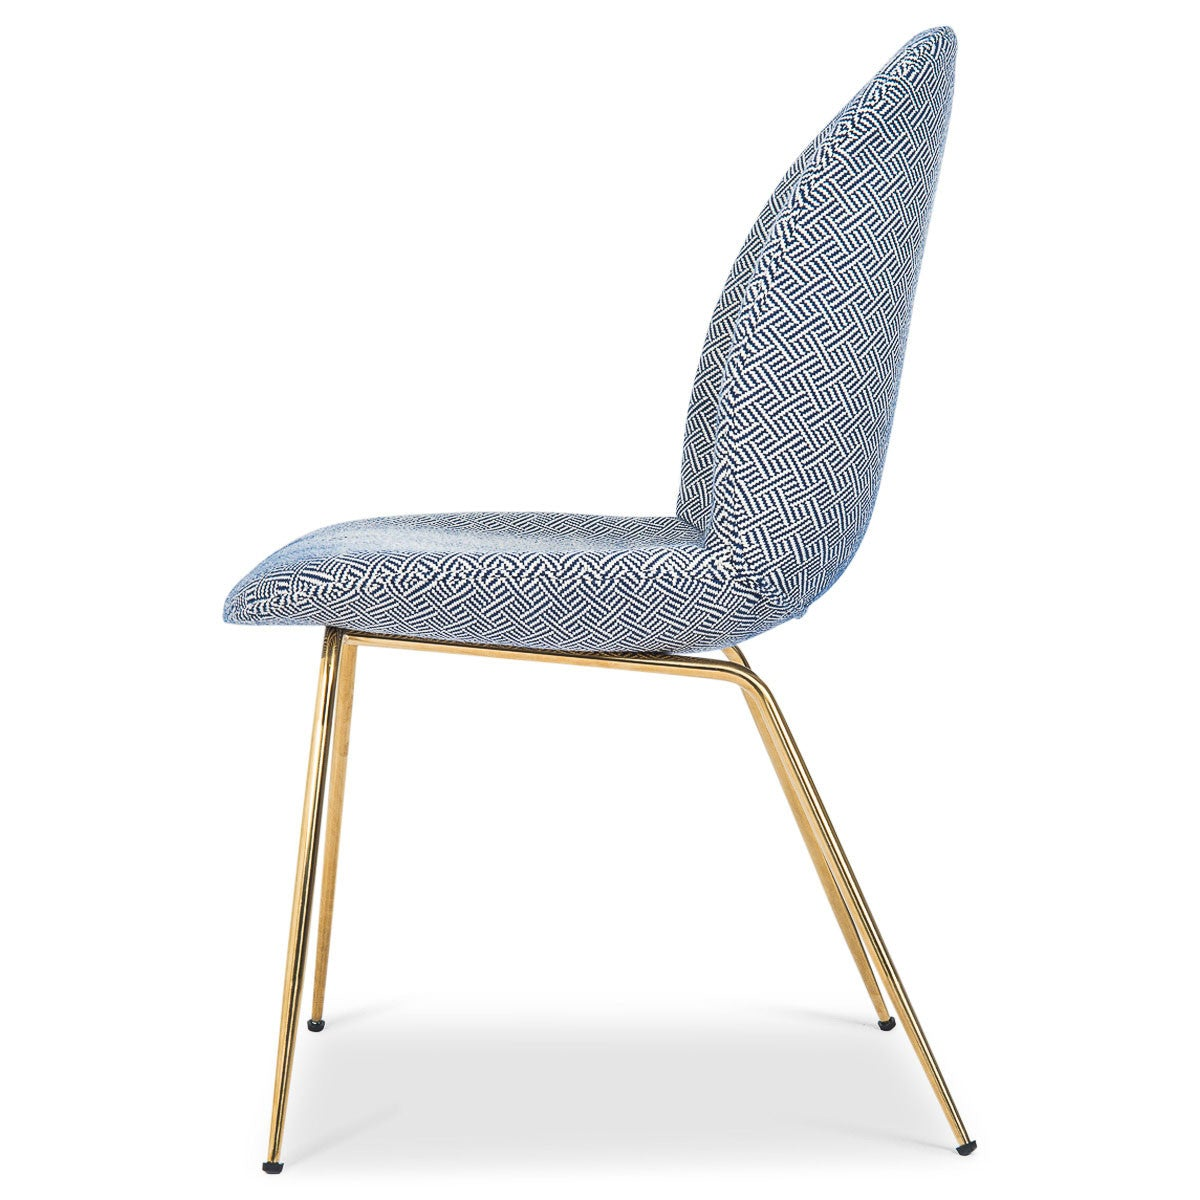 Amalfi Dining Chair in Linen - ModShop1.com